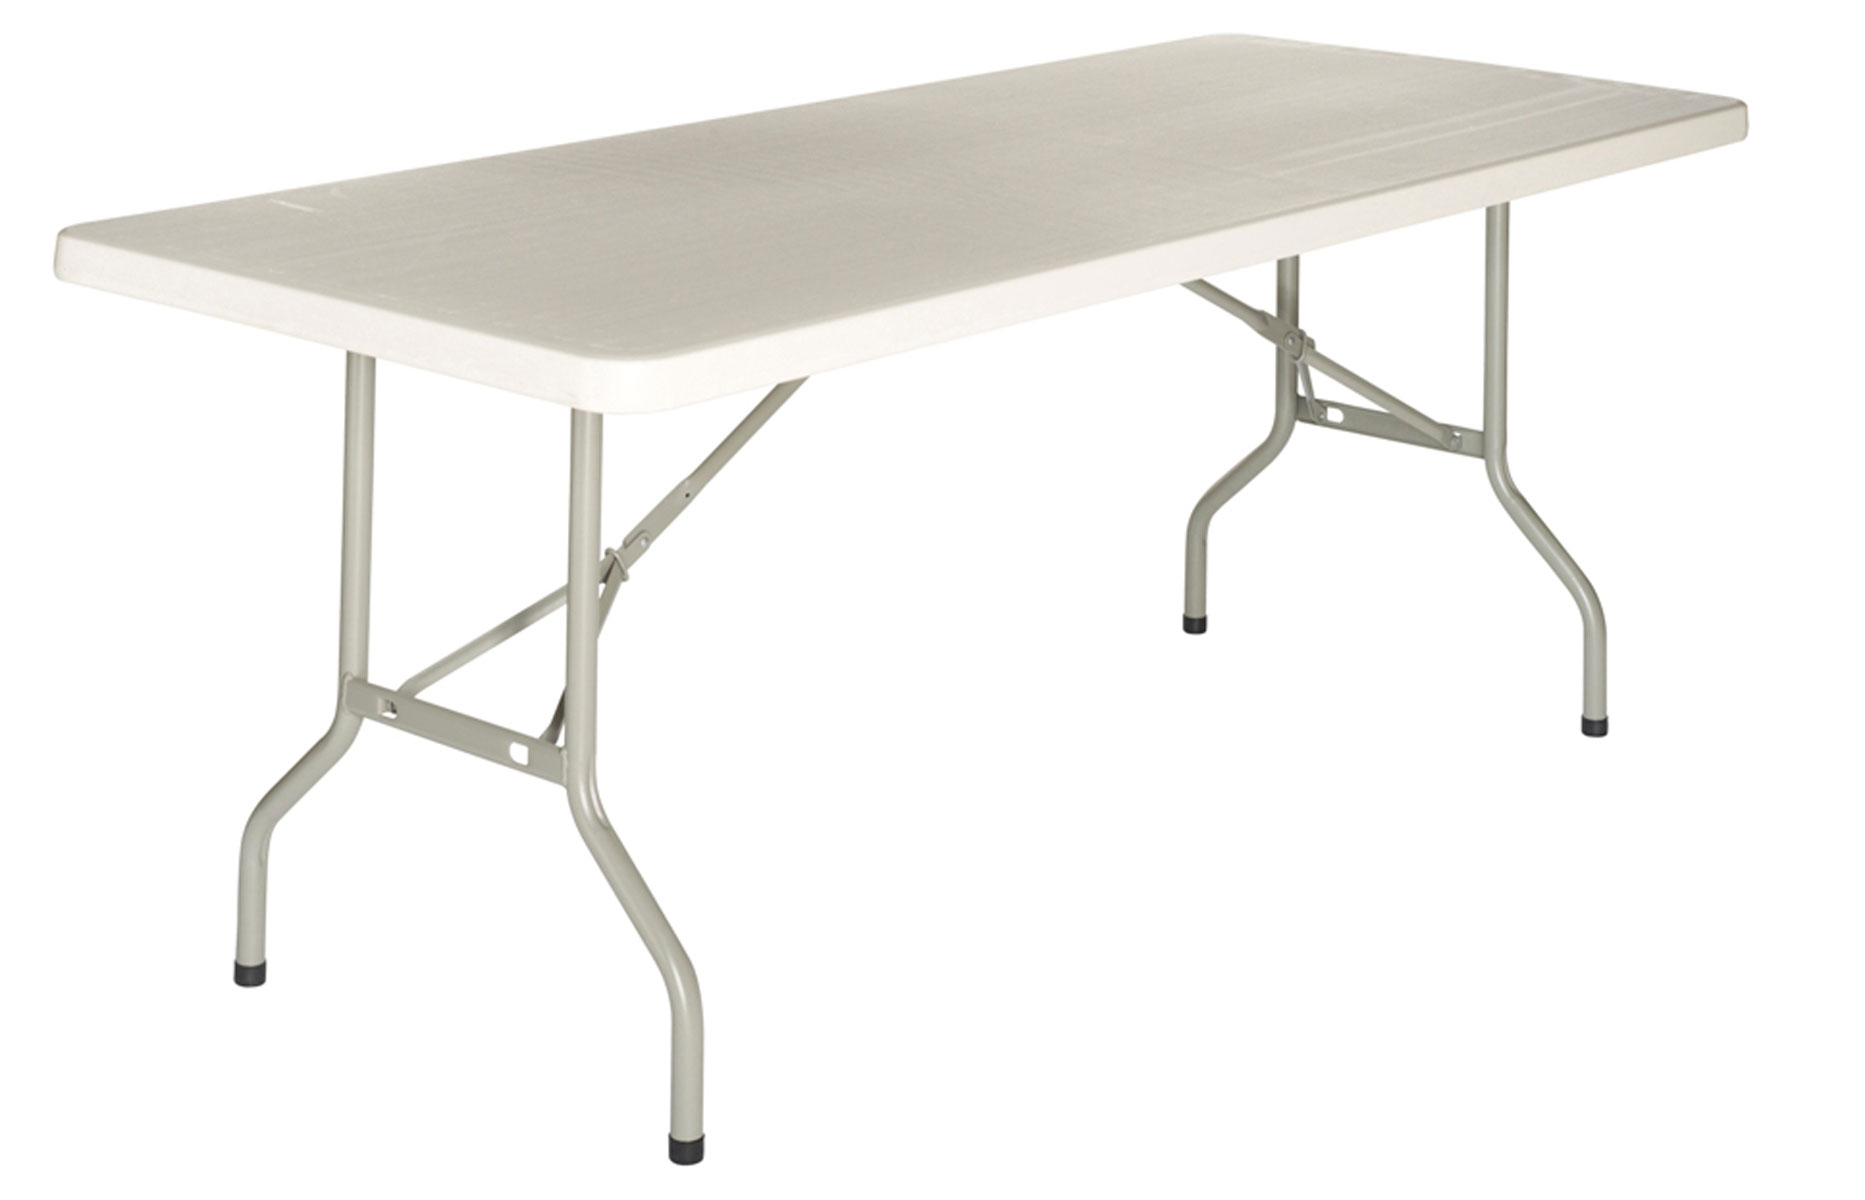 Table pliante en plastique tulle table pliante en - Table ronde pliante pas cher ...